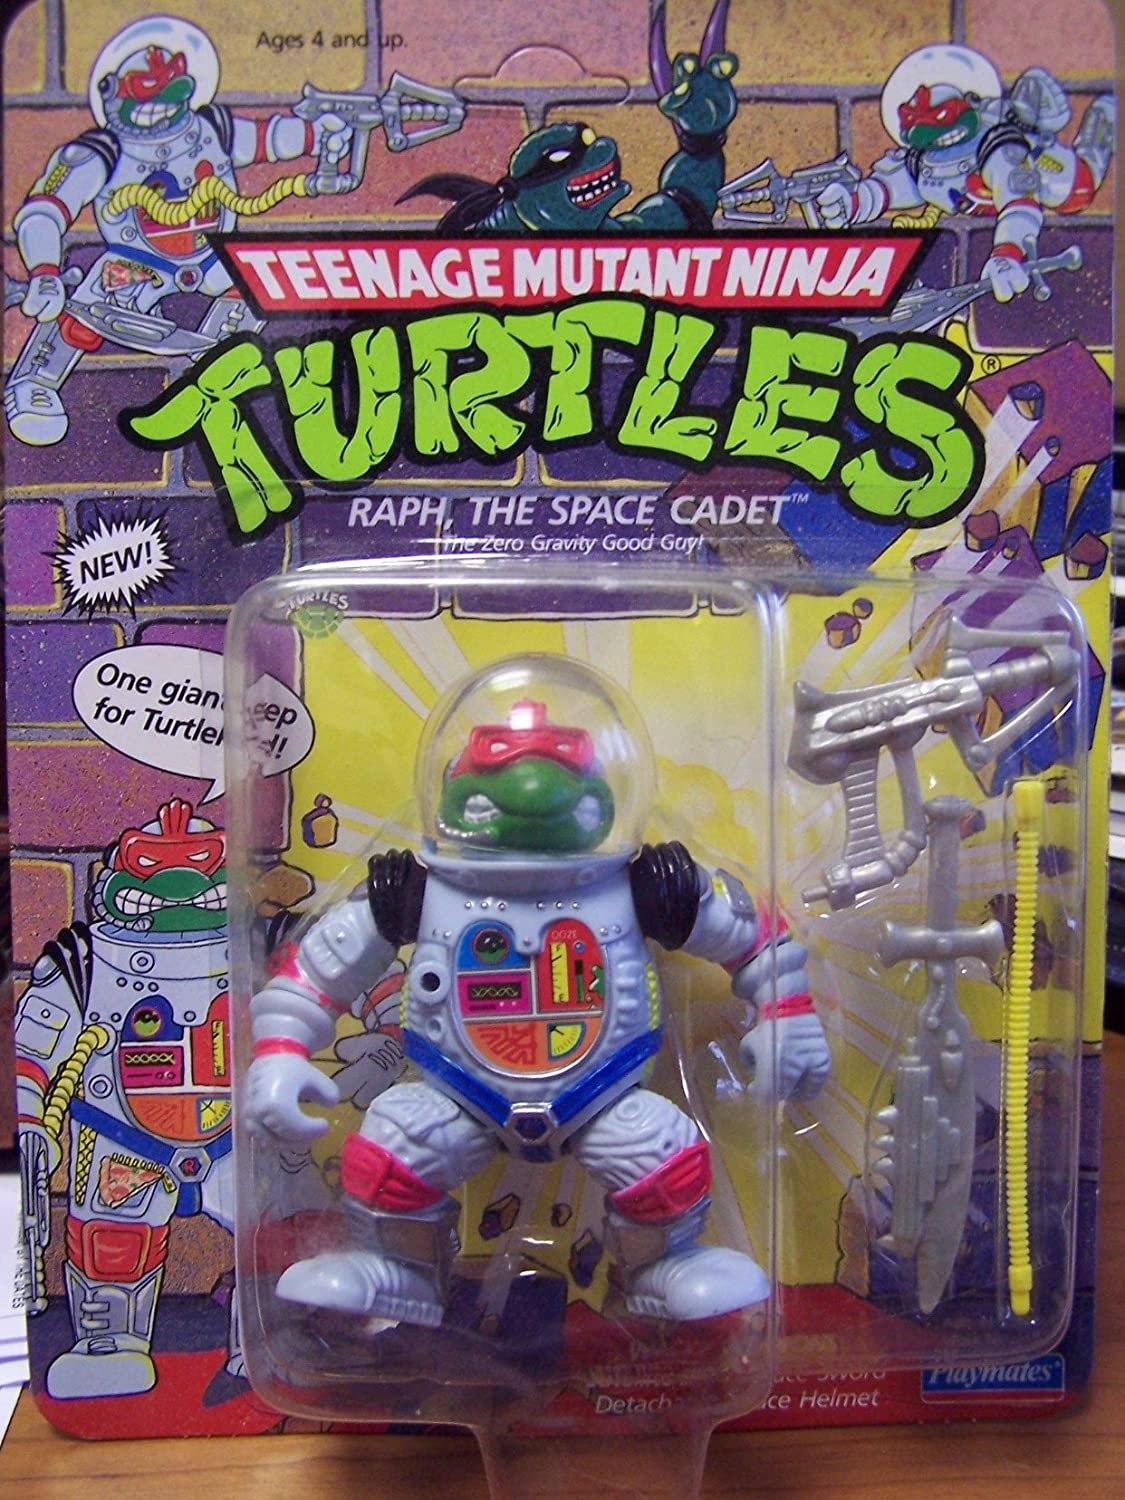 The Space Cadet The Space Cadet Playmates 5000 Teenage Mutant Ninja Turtles Raph